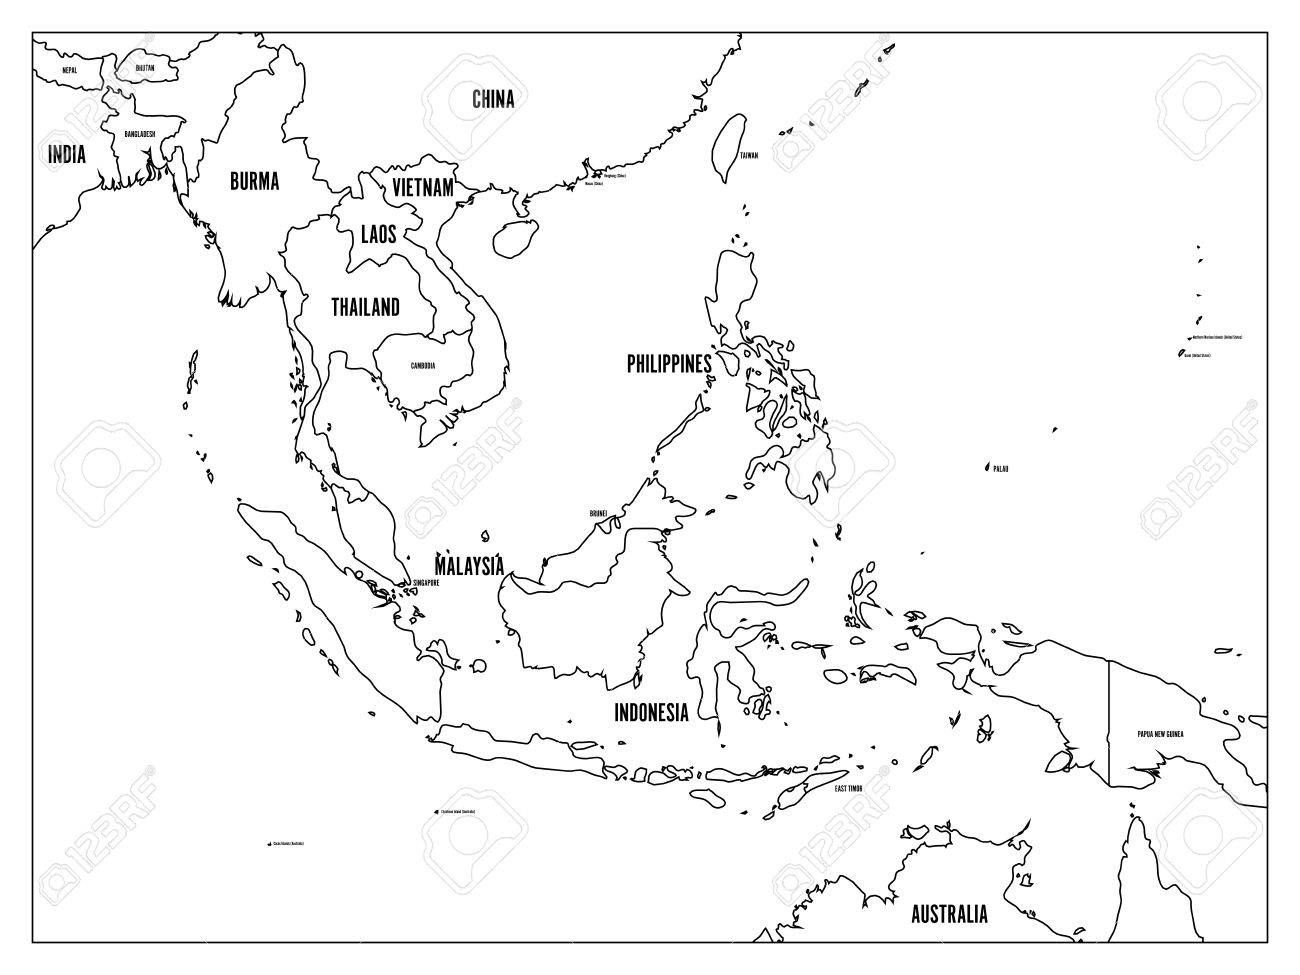 Blank Map Of Asia To Label.South East Asia Political Map Black Outline On White Background